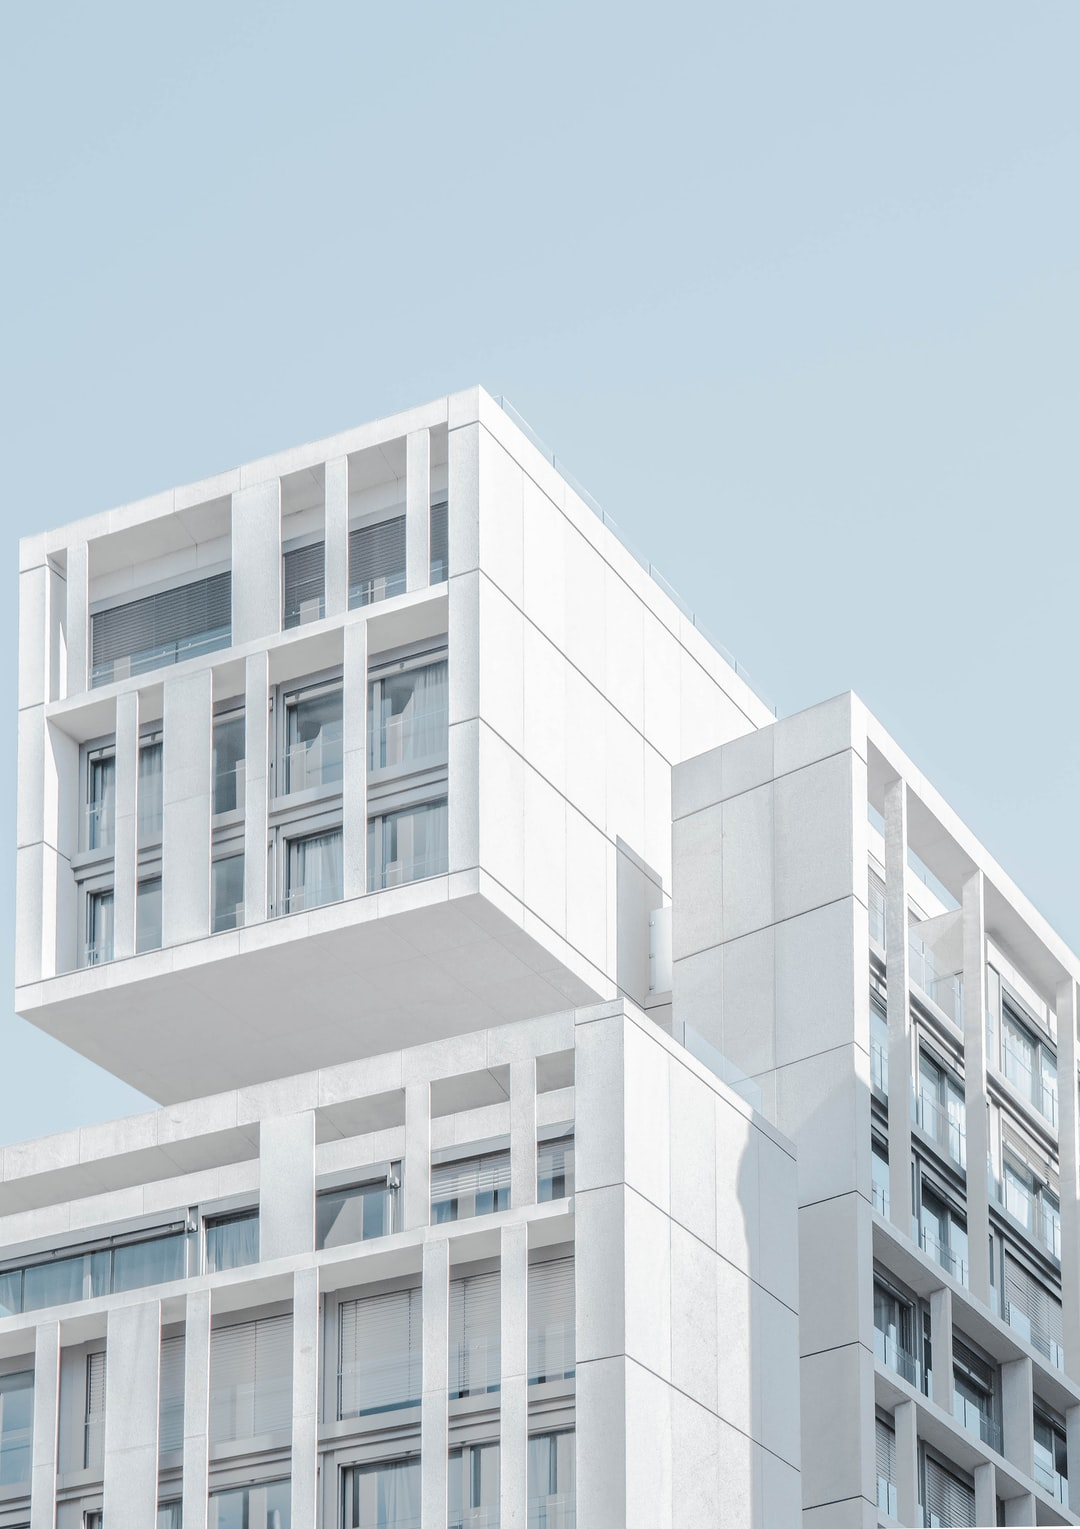 100+ Architecture Pictures [HQ] | Download Free Images on Unsplash